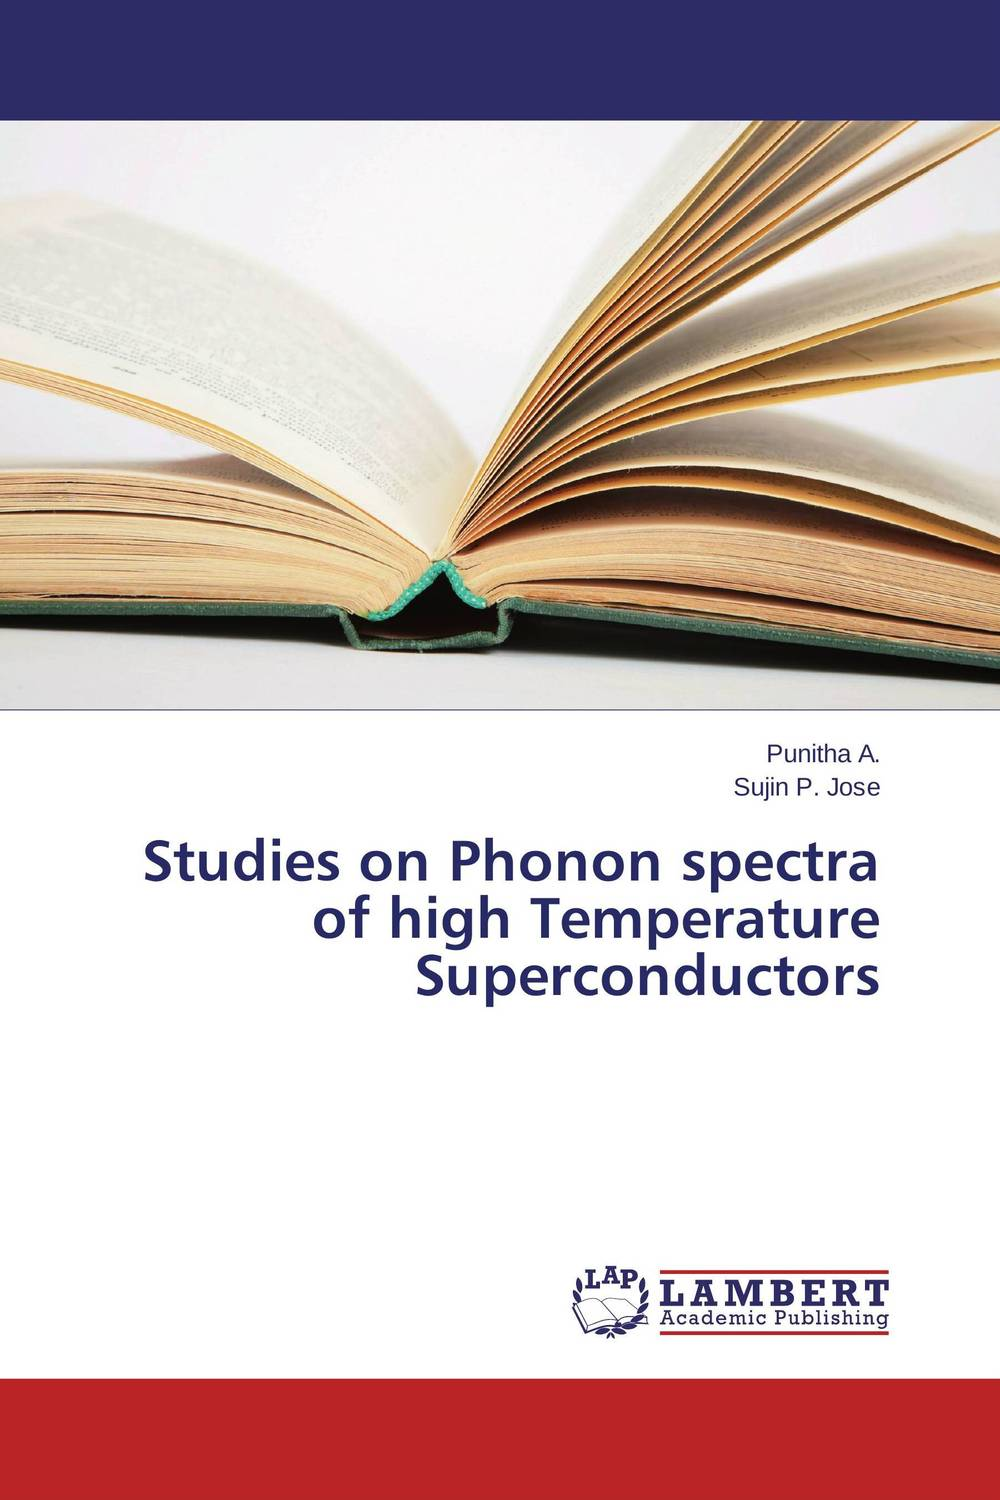 Studies on Phonon spectra of high Temperature Superconductors